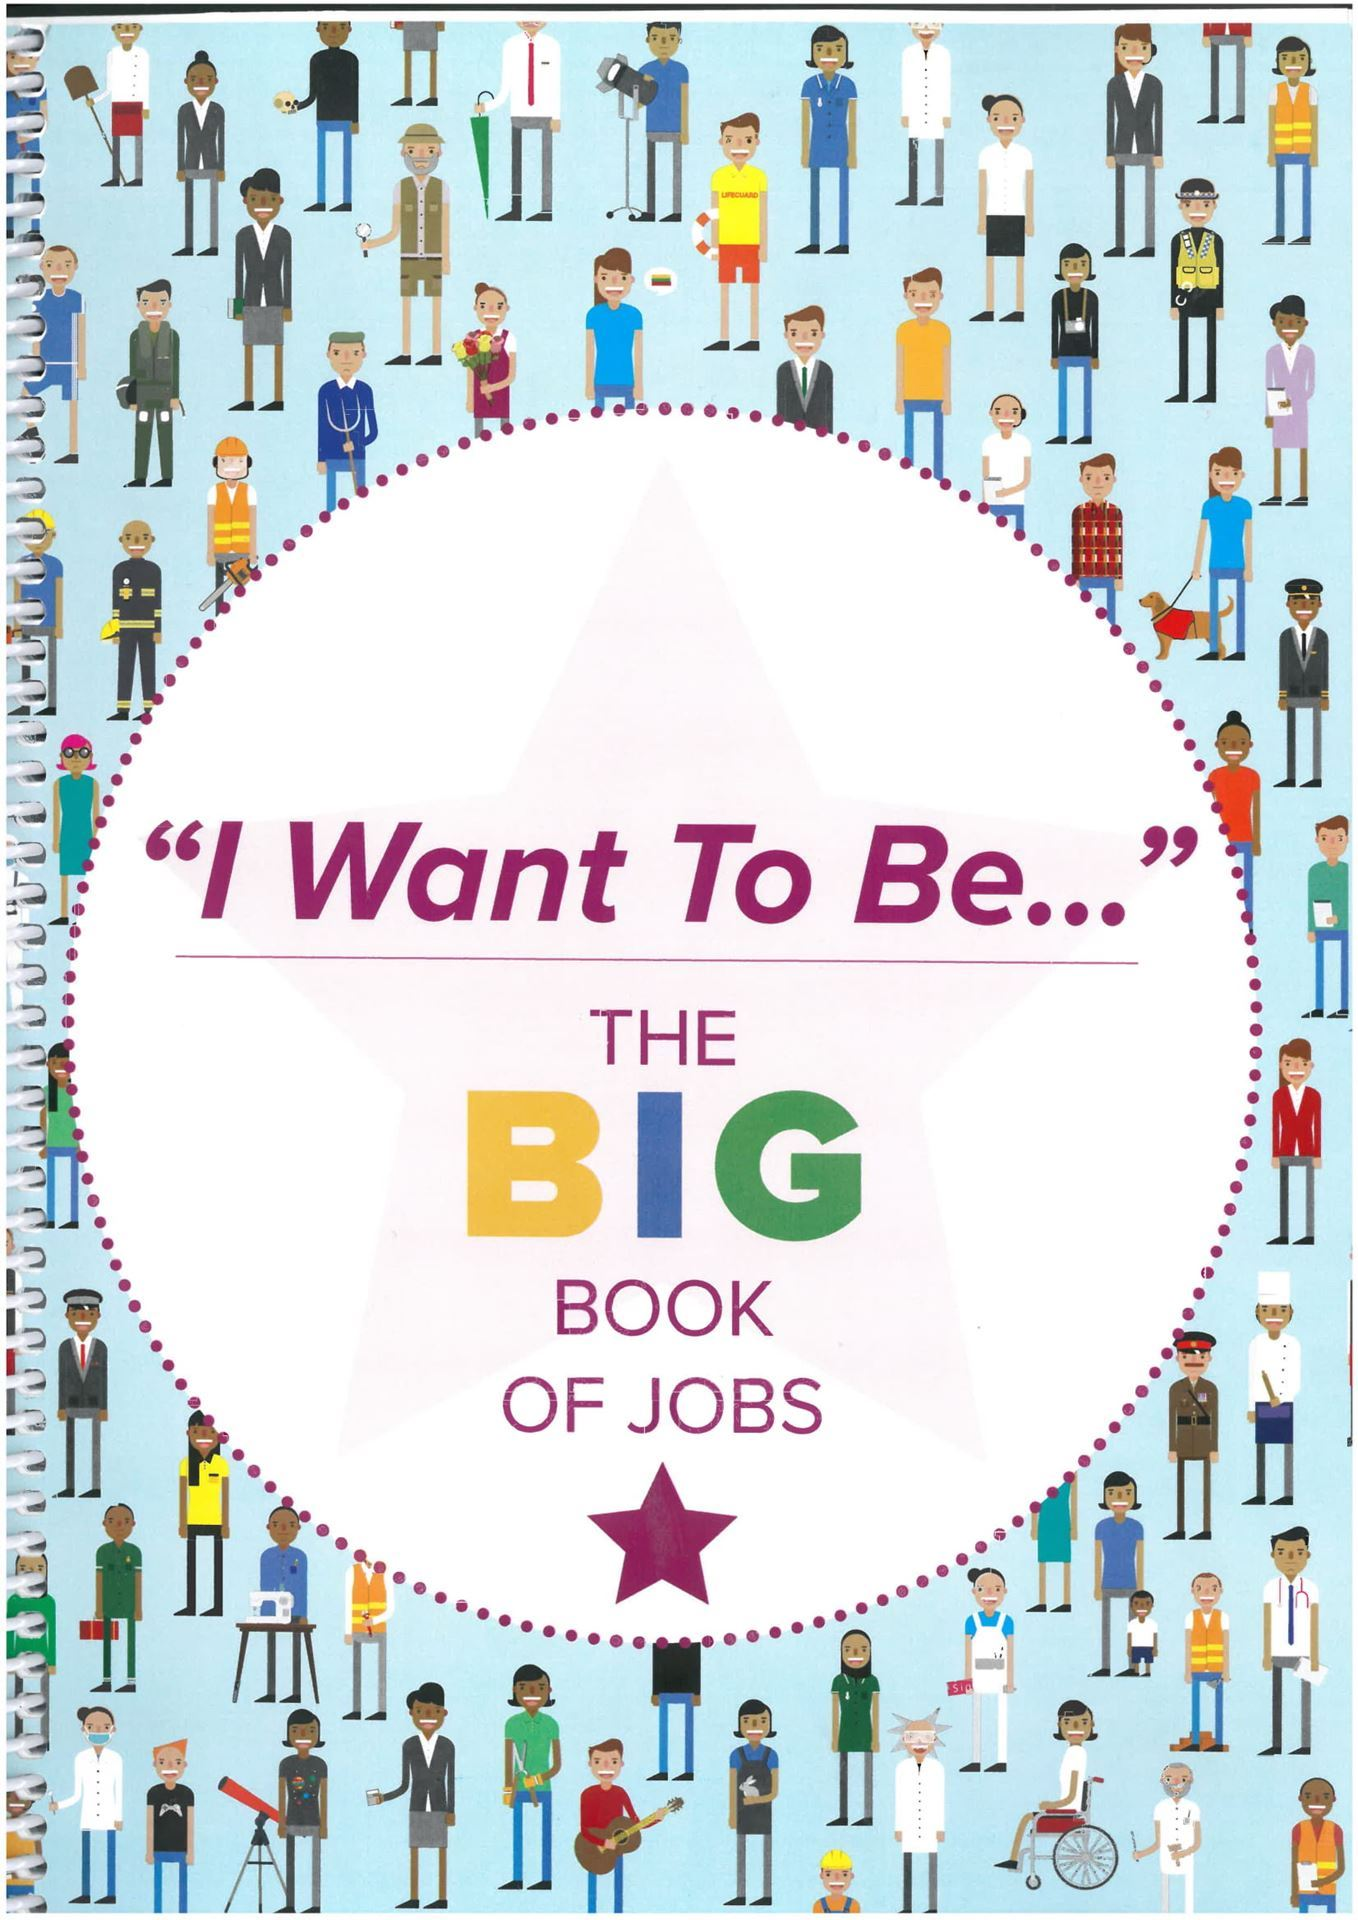 Prospects Education Resources I Want To Be The Big Book Of Jobs